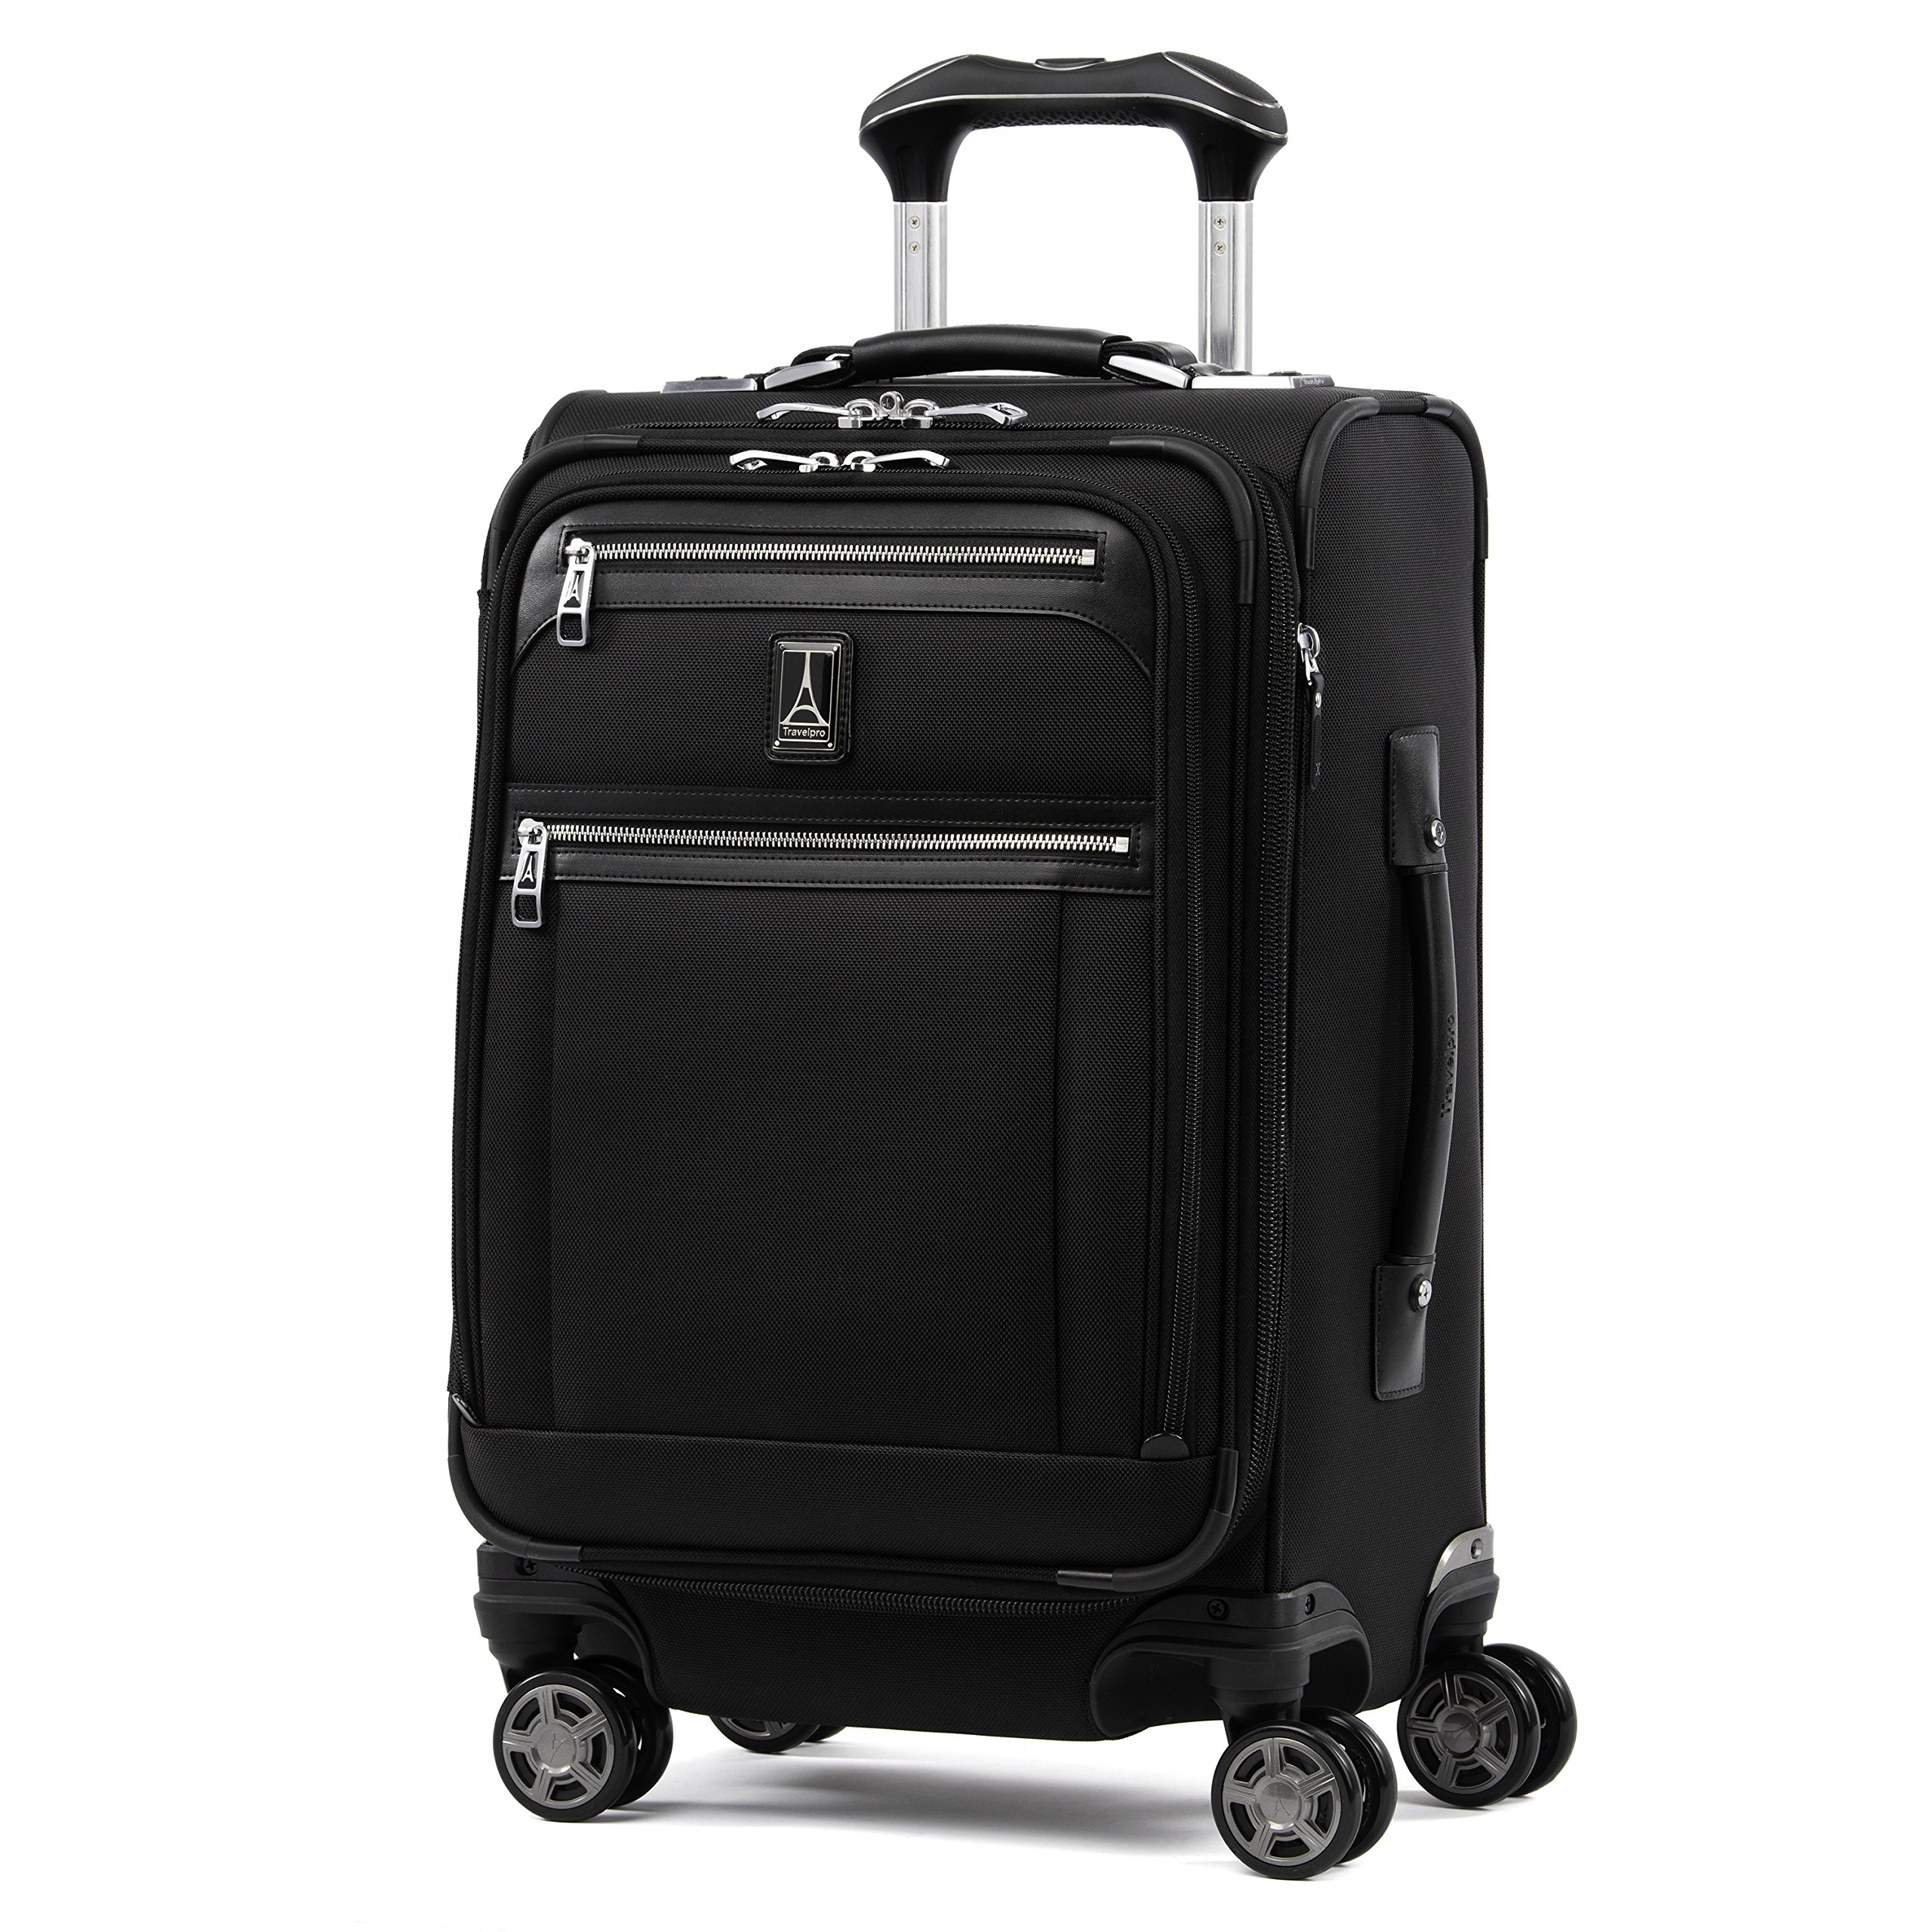 Travelpro Luggage Platinum Elite 20'' Carry-on Expandable Business Spinner w/USB Port, Shadow Black